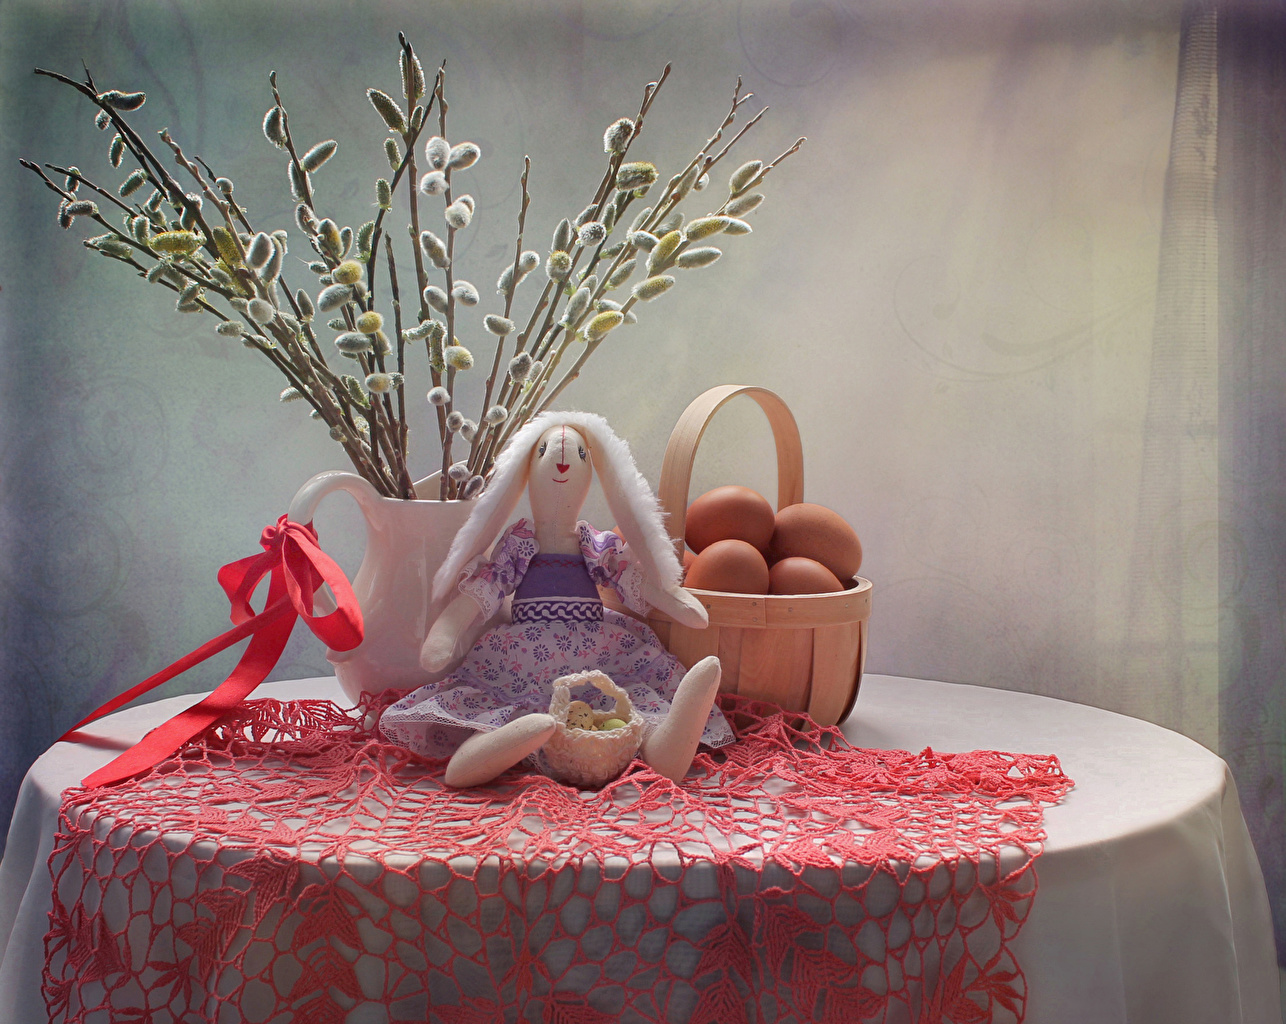 Pictures Easter Doll Eggs Wicker basket Food Table Branches bow knot Still-life egg Bowknot